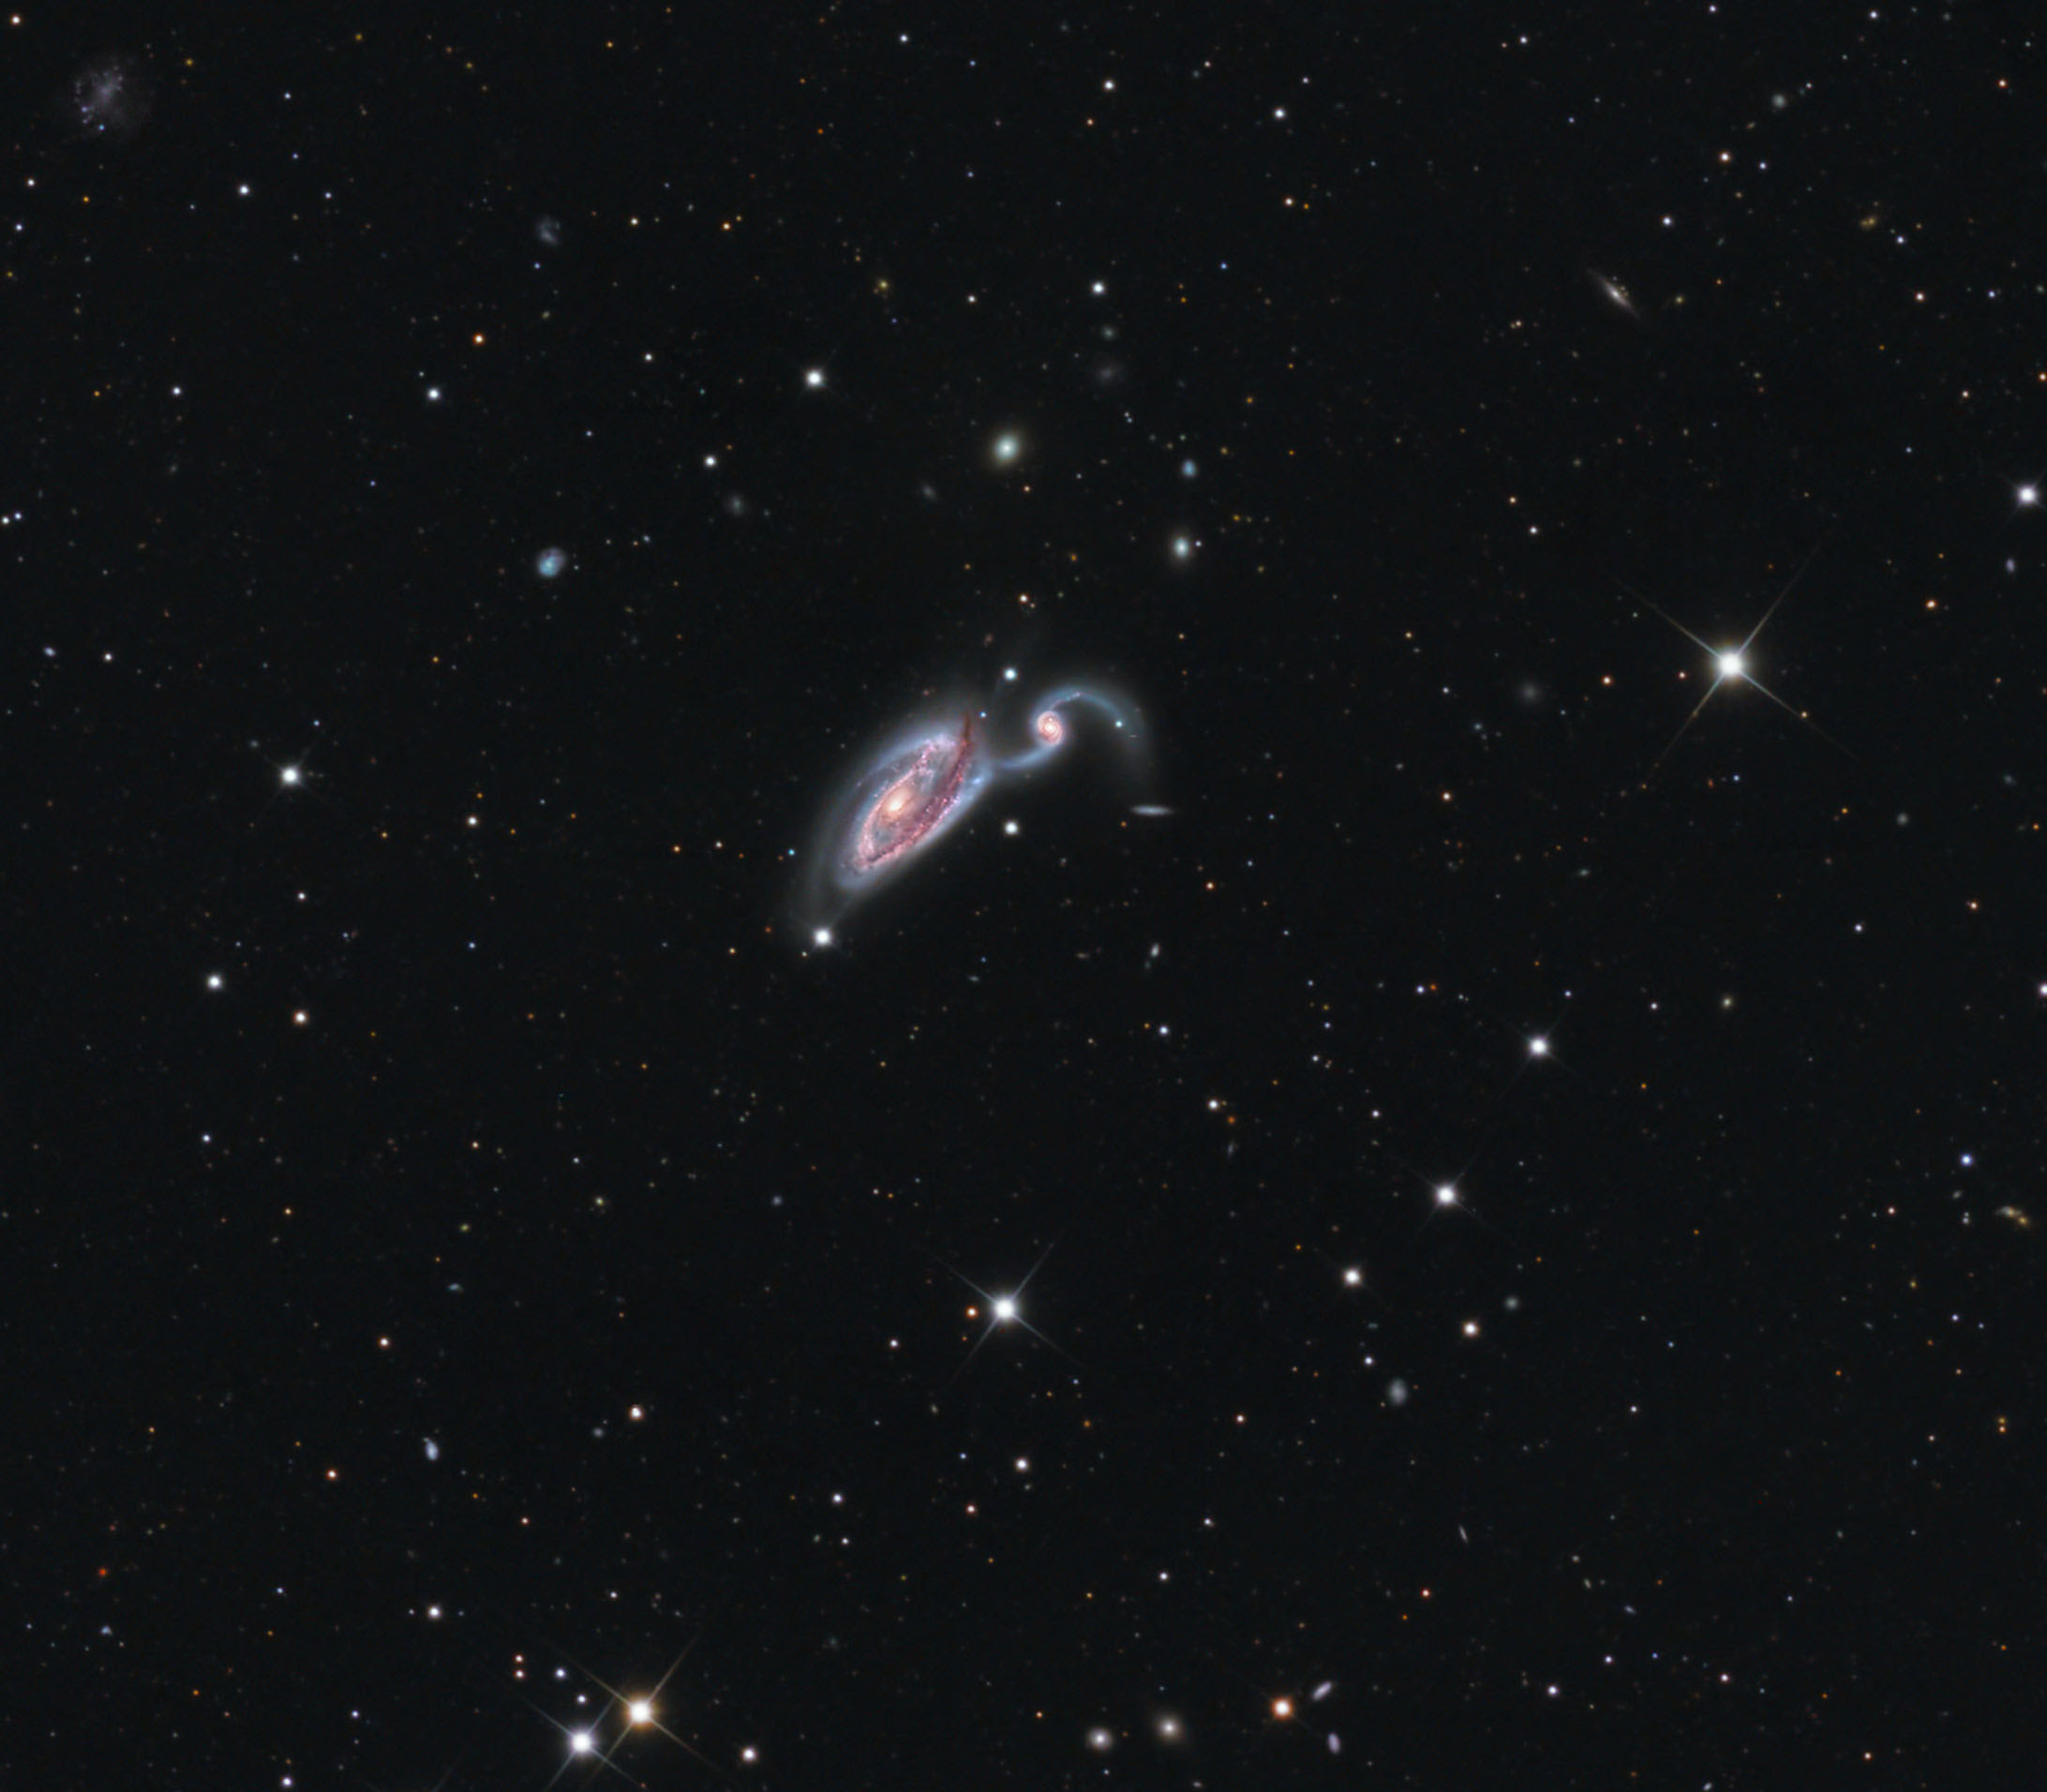 Heron Galaxy Spears Deep Space 'Fish' in Night Sky Photo